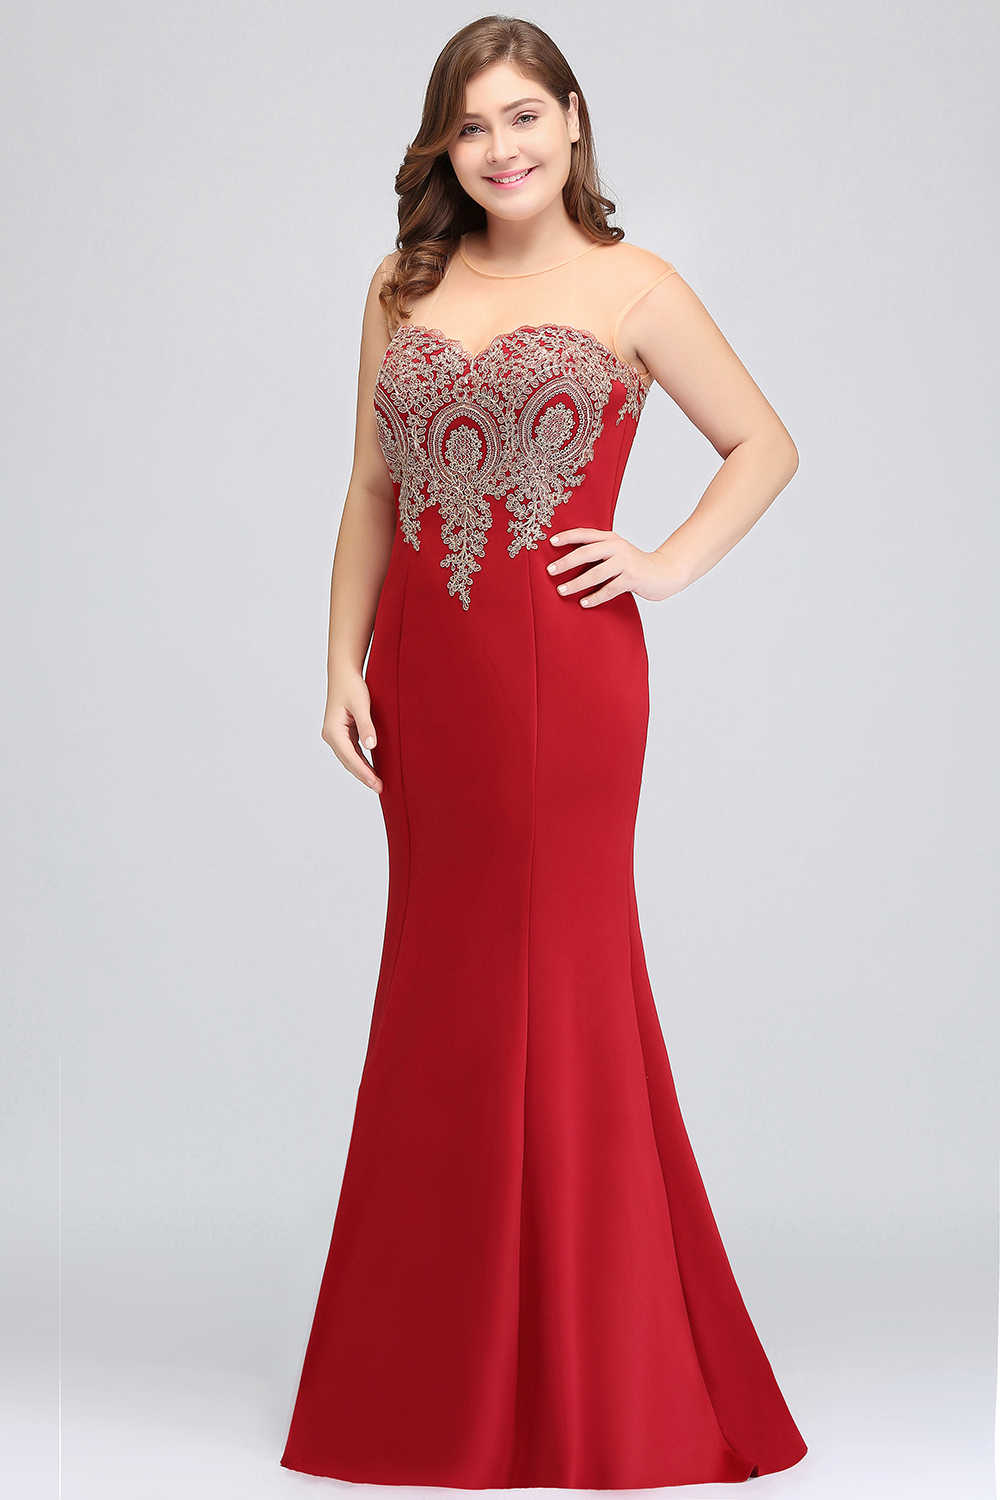 3feeba75a1a Long Evening Dresses For Plus Size - Gomes Weine AG